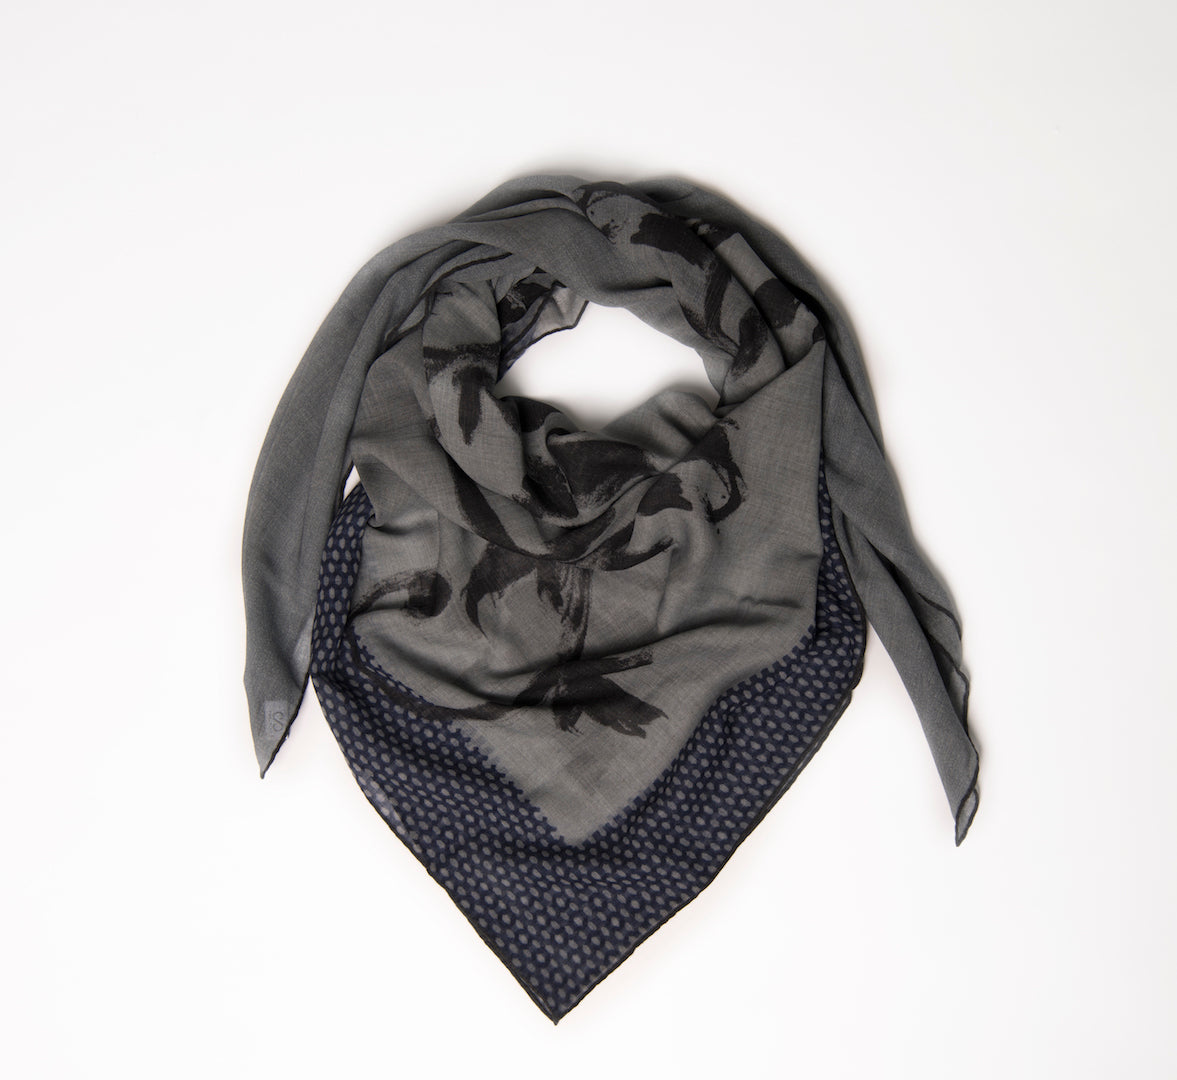 luxury foulard made-in-italy hand rolled edges wool yack